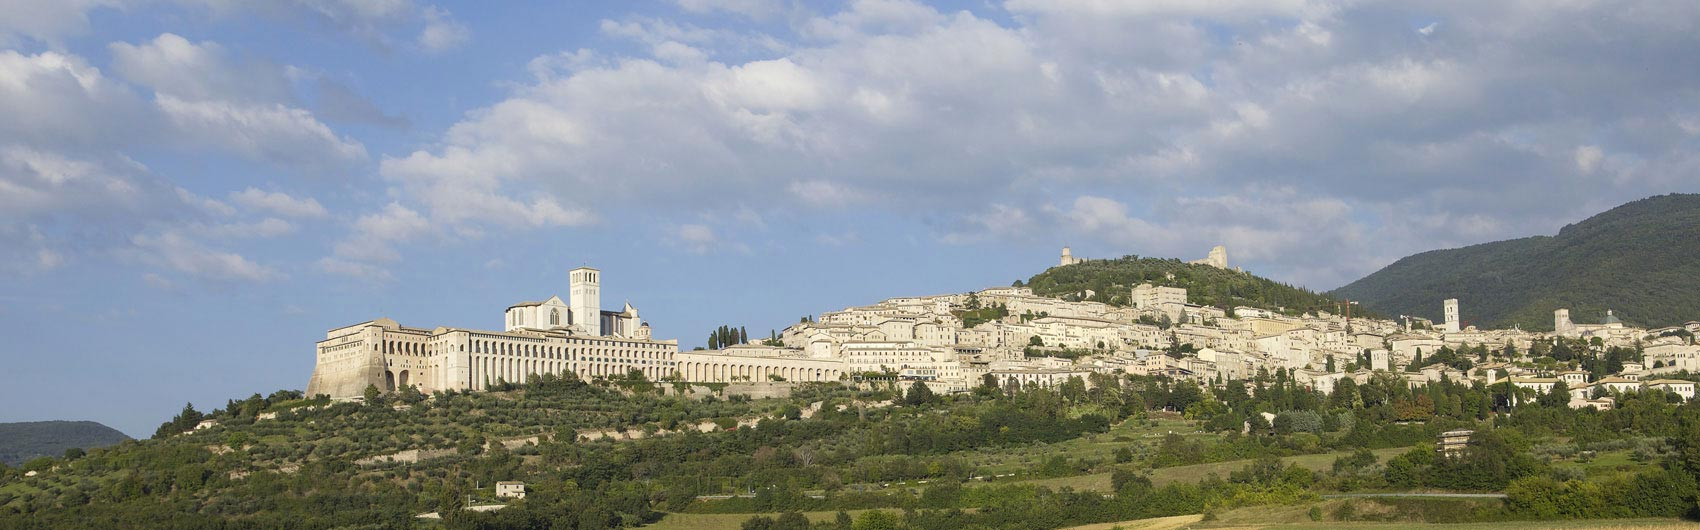 assisi-weddings